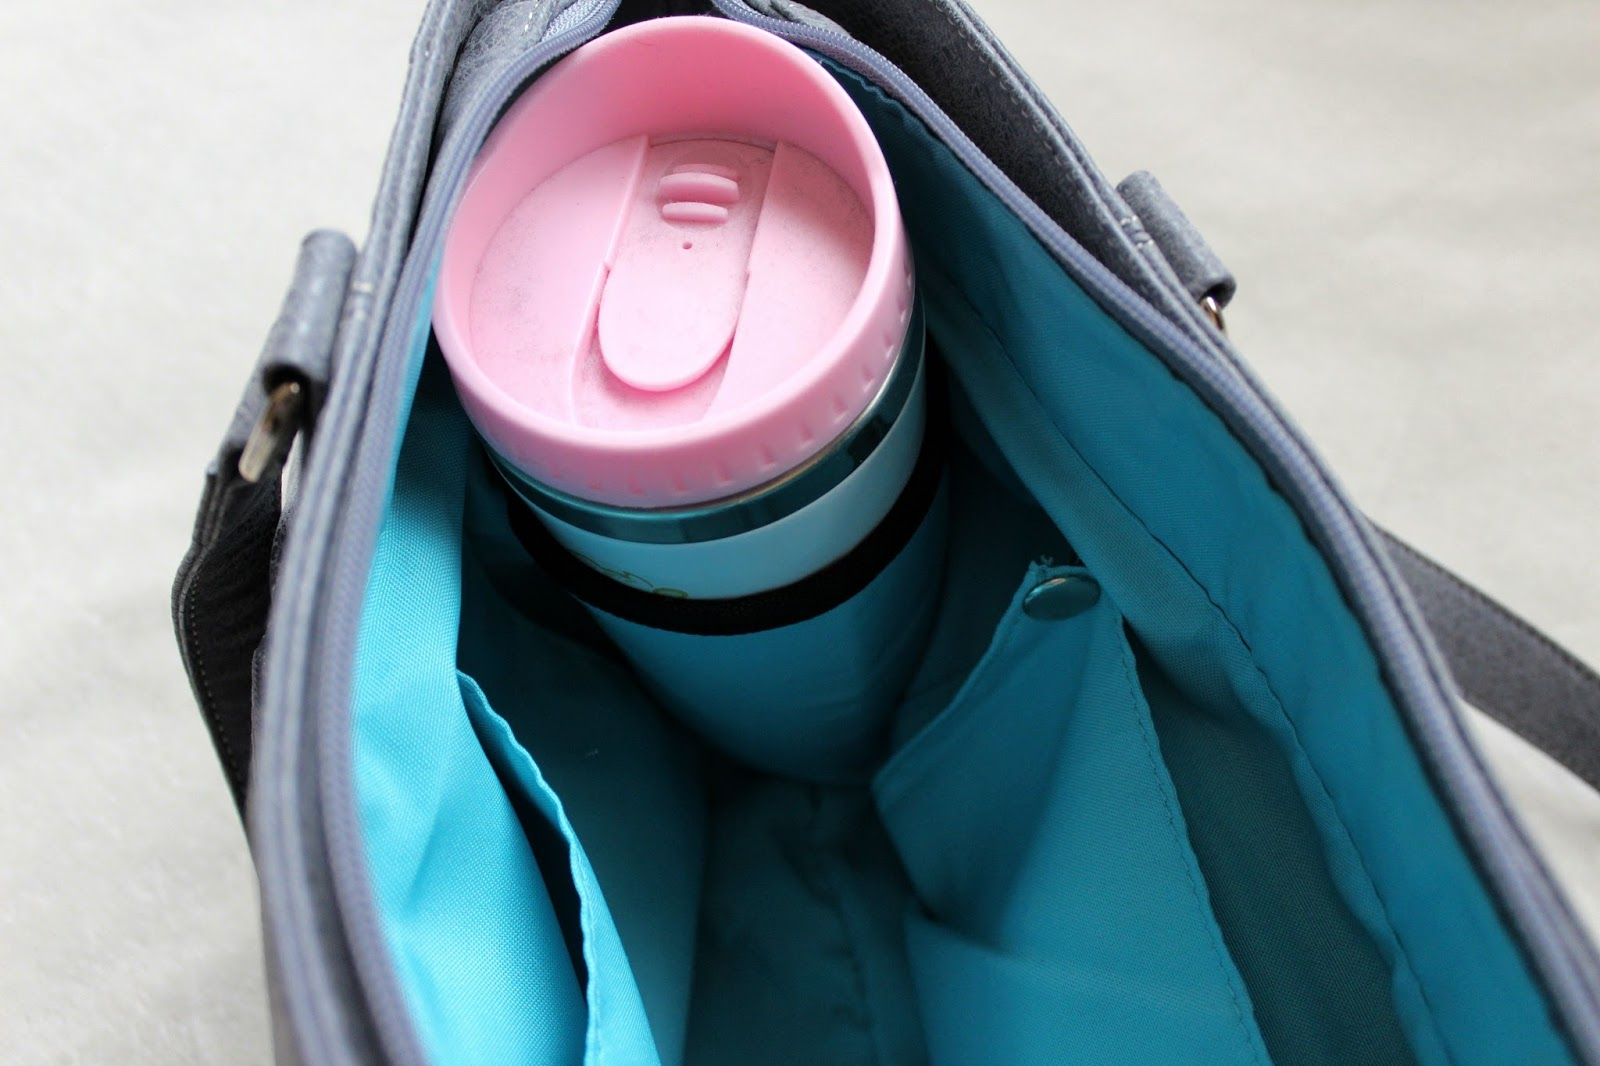 Turquoise interior of a large grey handbag, a pink reusable coffee cup is visible in the cup holder.